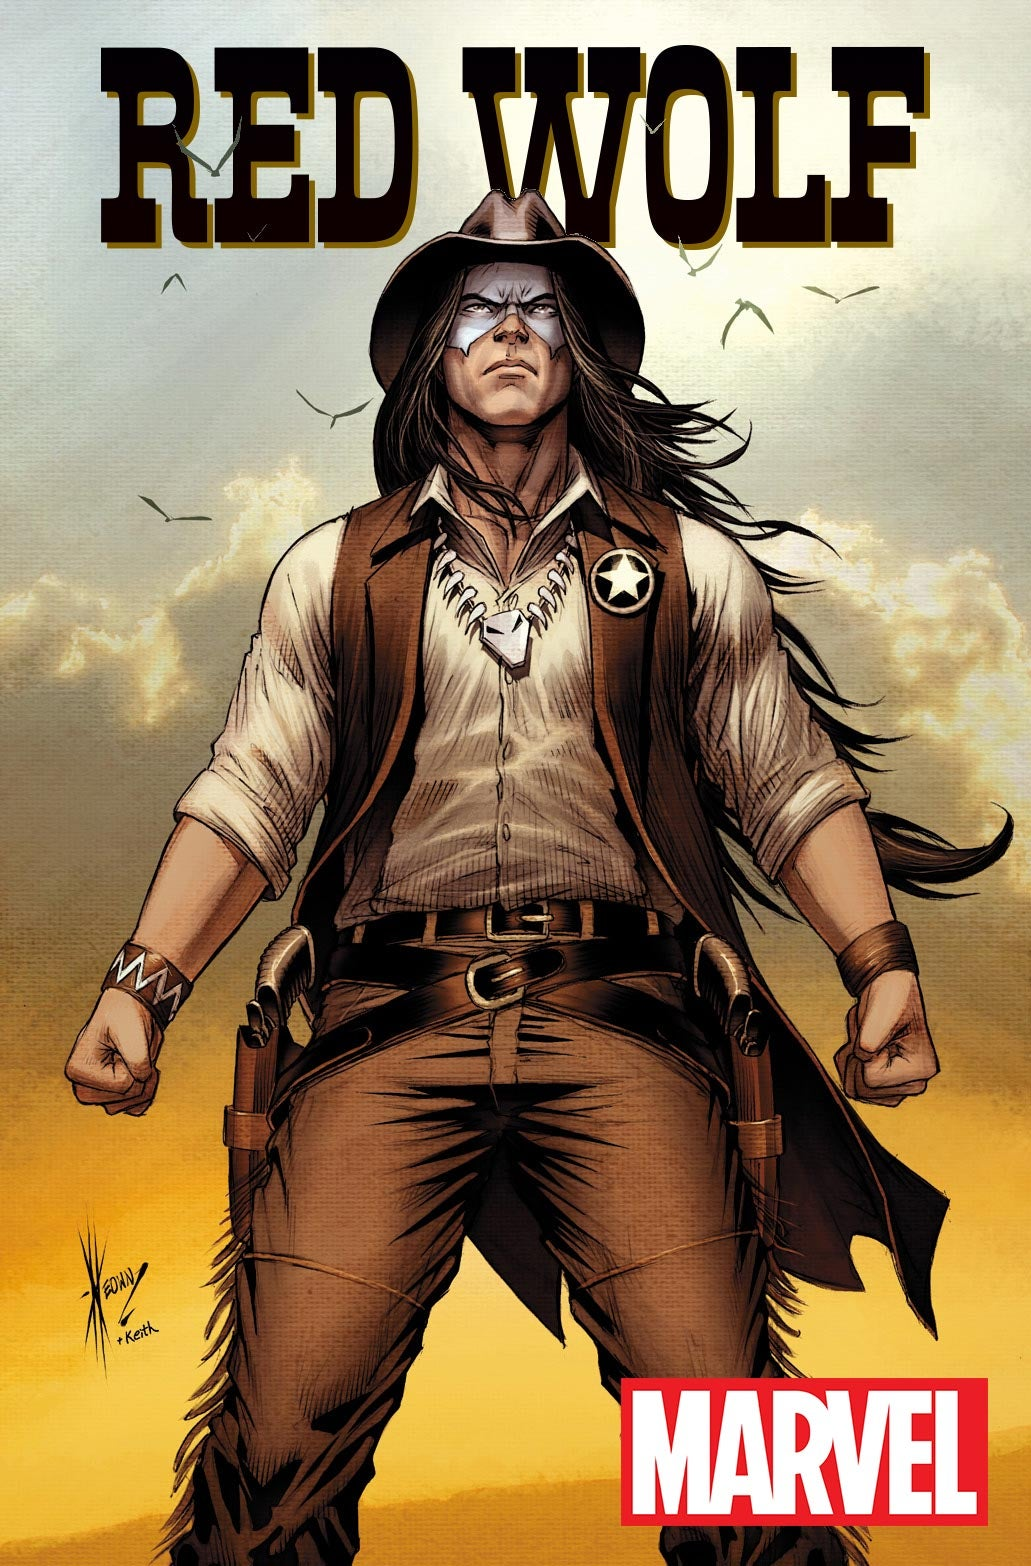 Marvel's New Native American Superhero Comic Leans Too Hard on Old Tropes